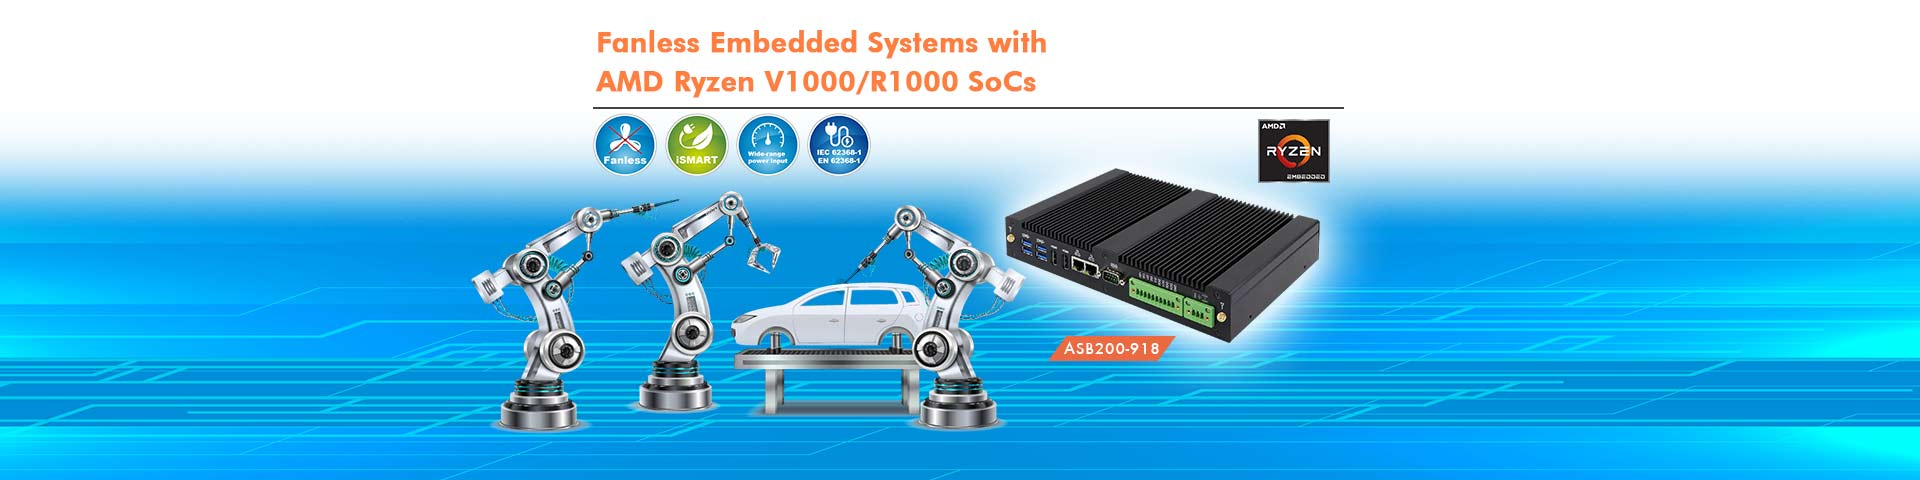 Fanless Embedded Systems with AMD Ryzen V1000/R1000 SoCs